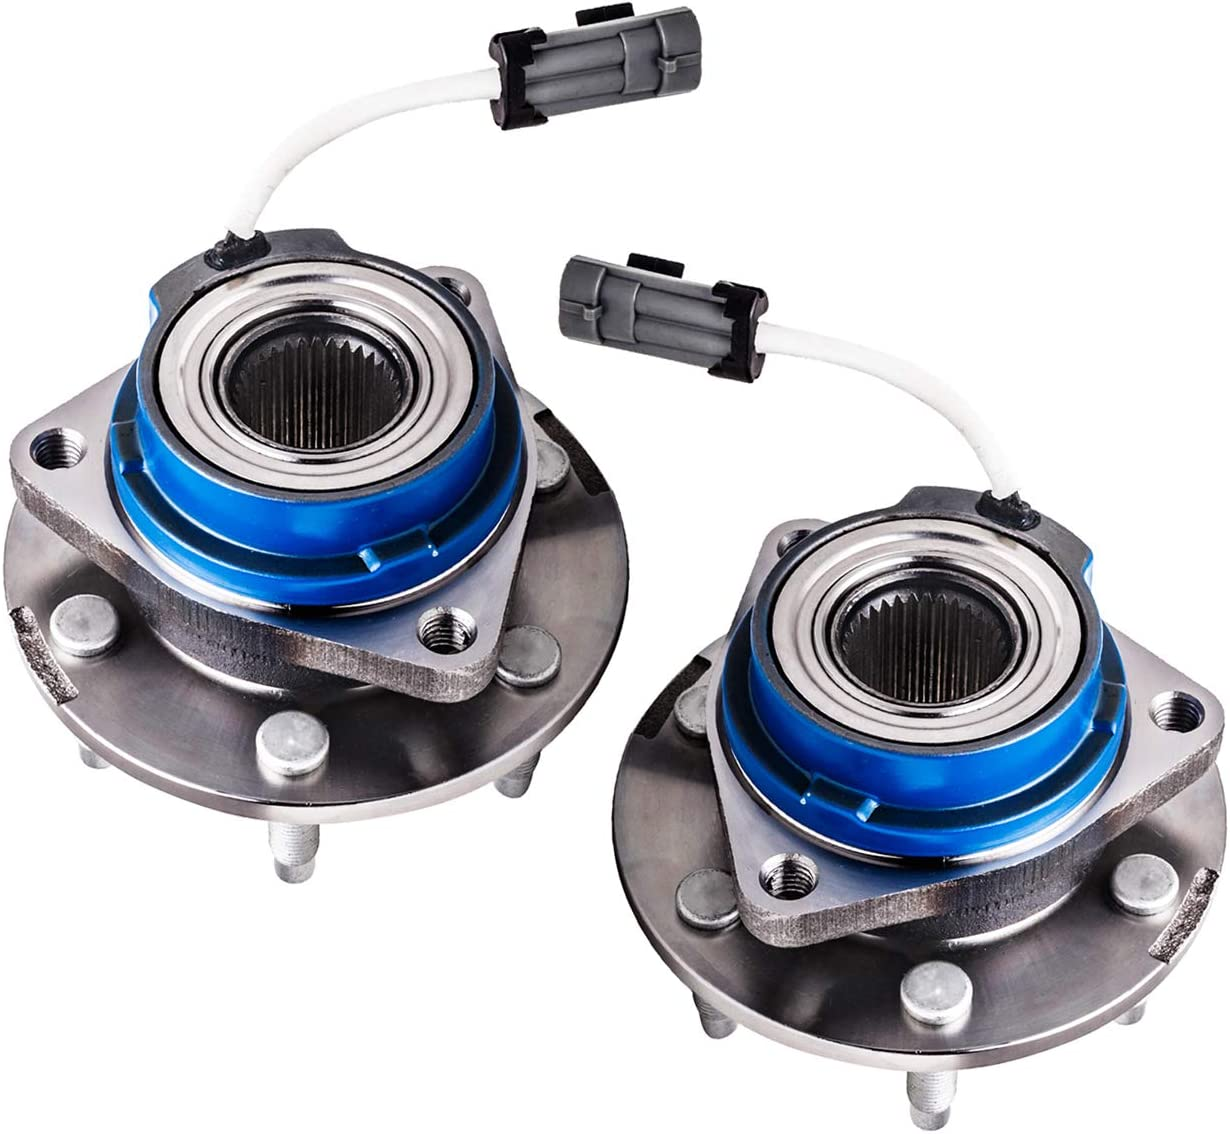 TUCAREST 513236 Front Wheel Bearing and Hub Assembly Compatible With 2006-2007 Buick Terraza Saturn Relay 2006-2009 Chevrolet Uplander Pontiac Montana 6-Stud Hub W//ABS